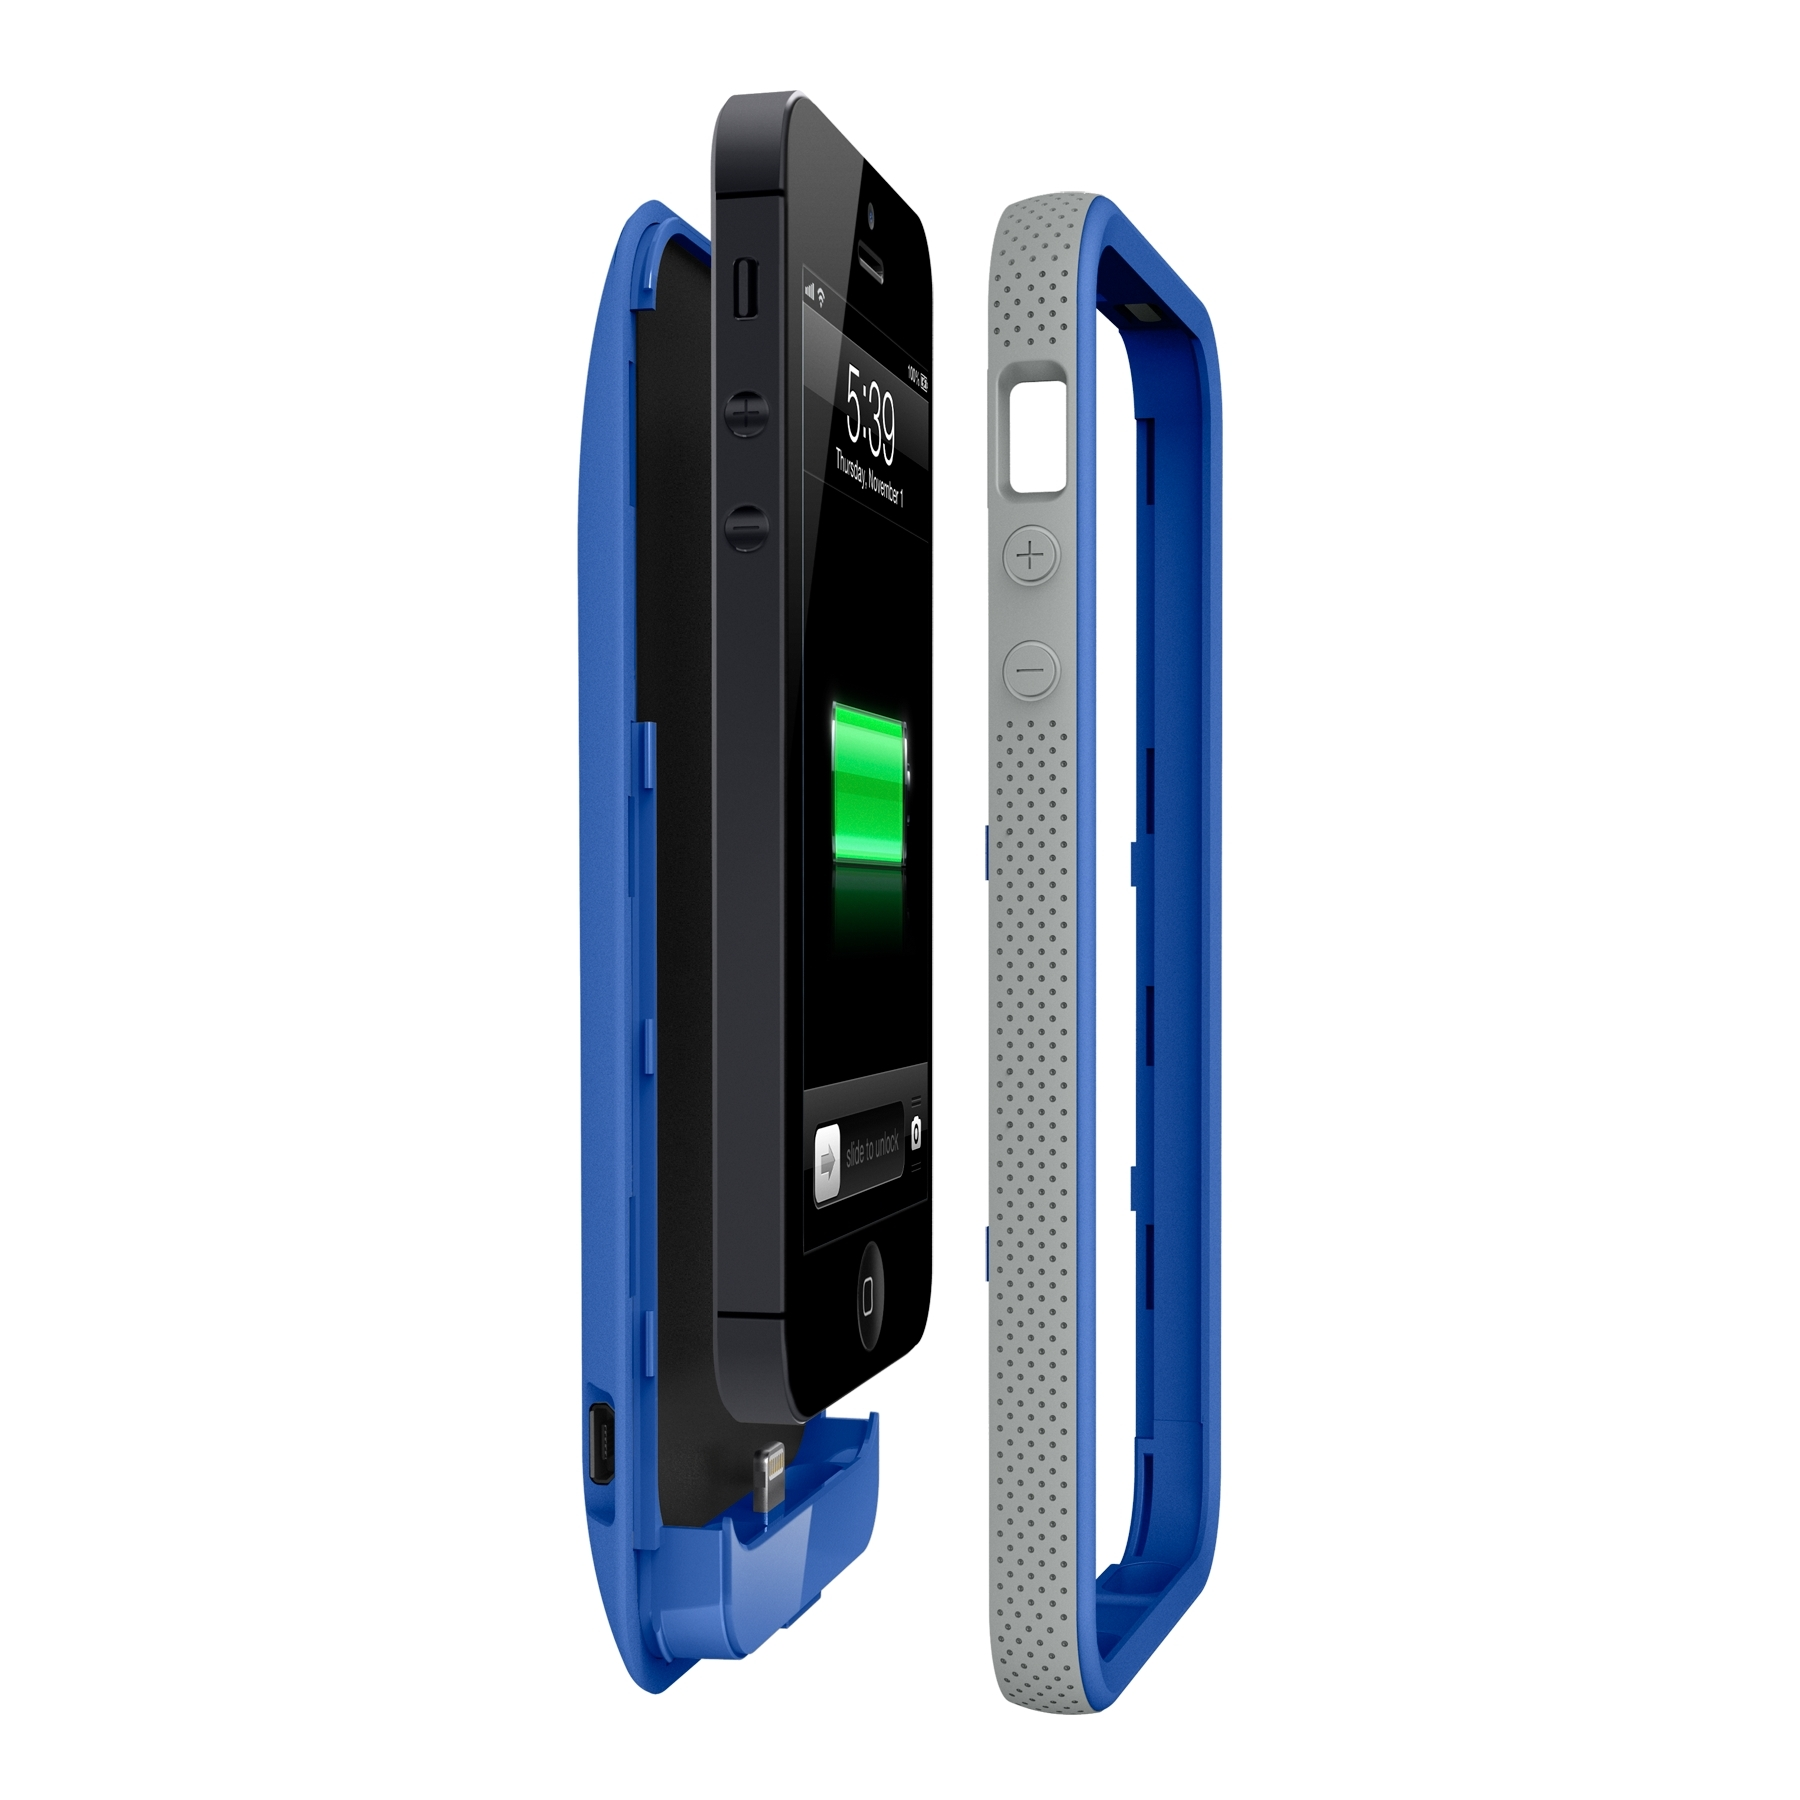 battery-case-iphone-install-blue